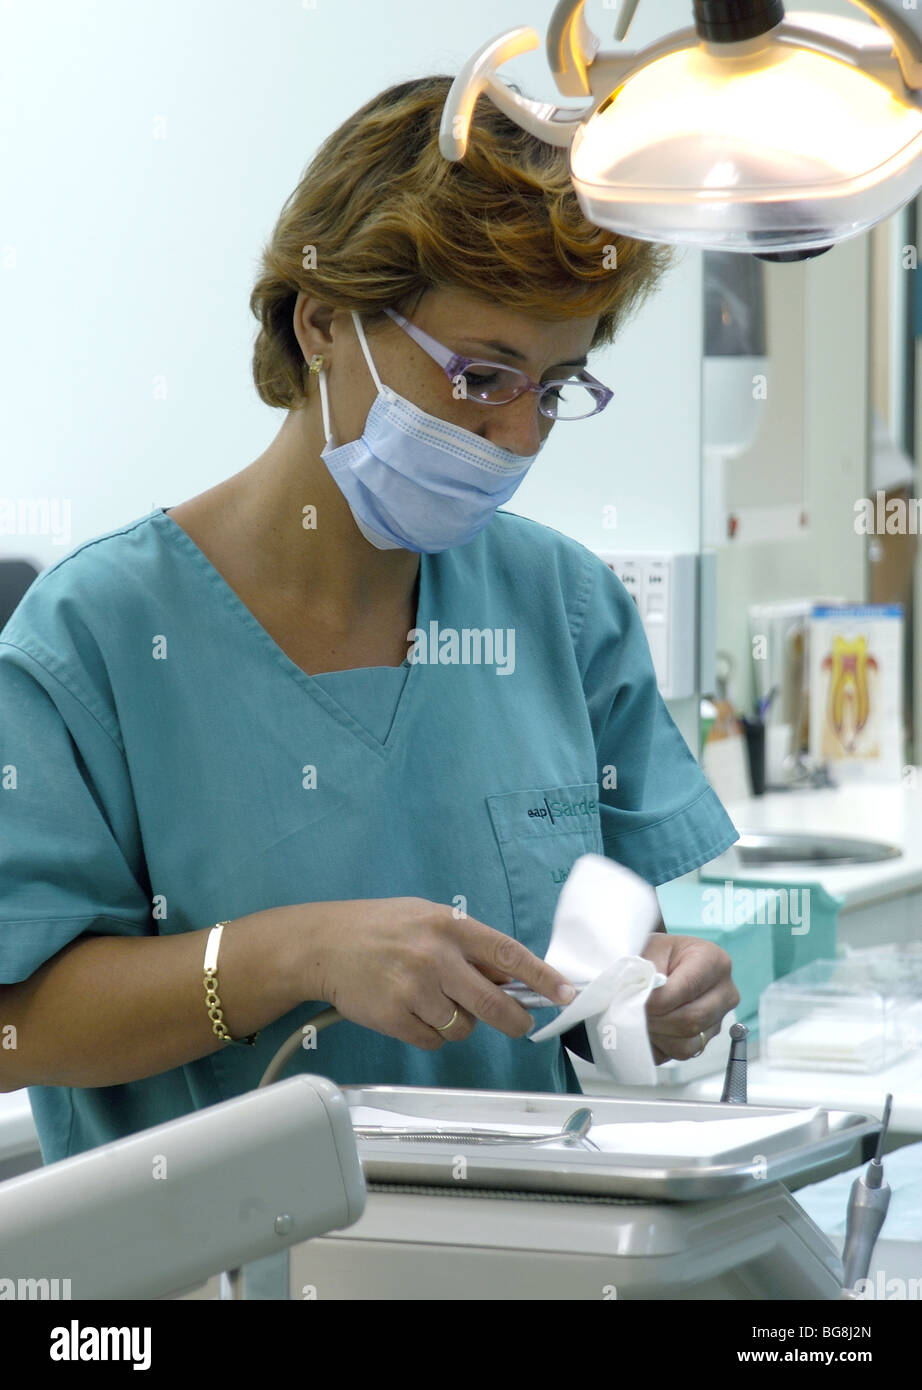 how to clean clinic instrument